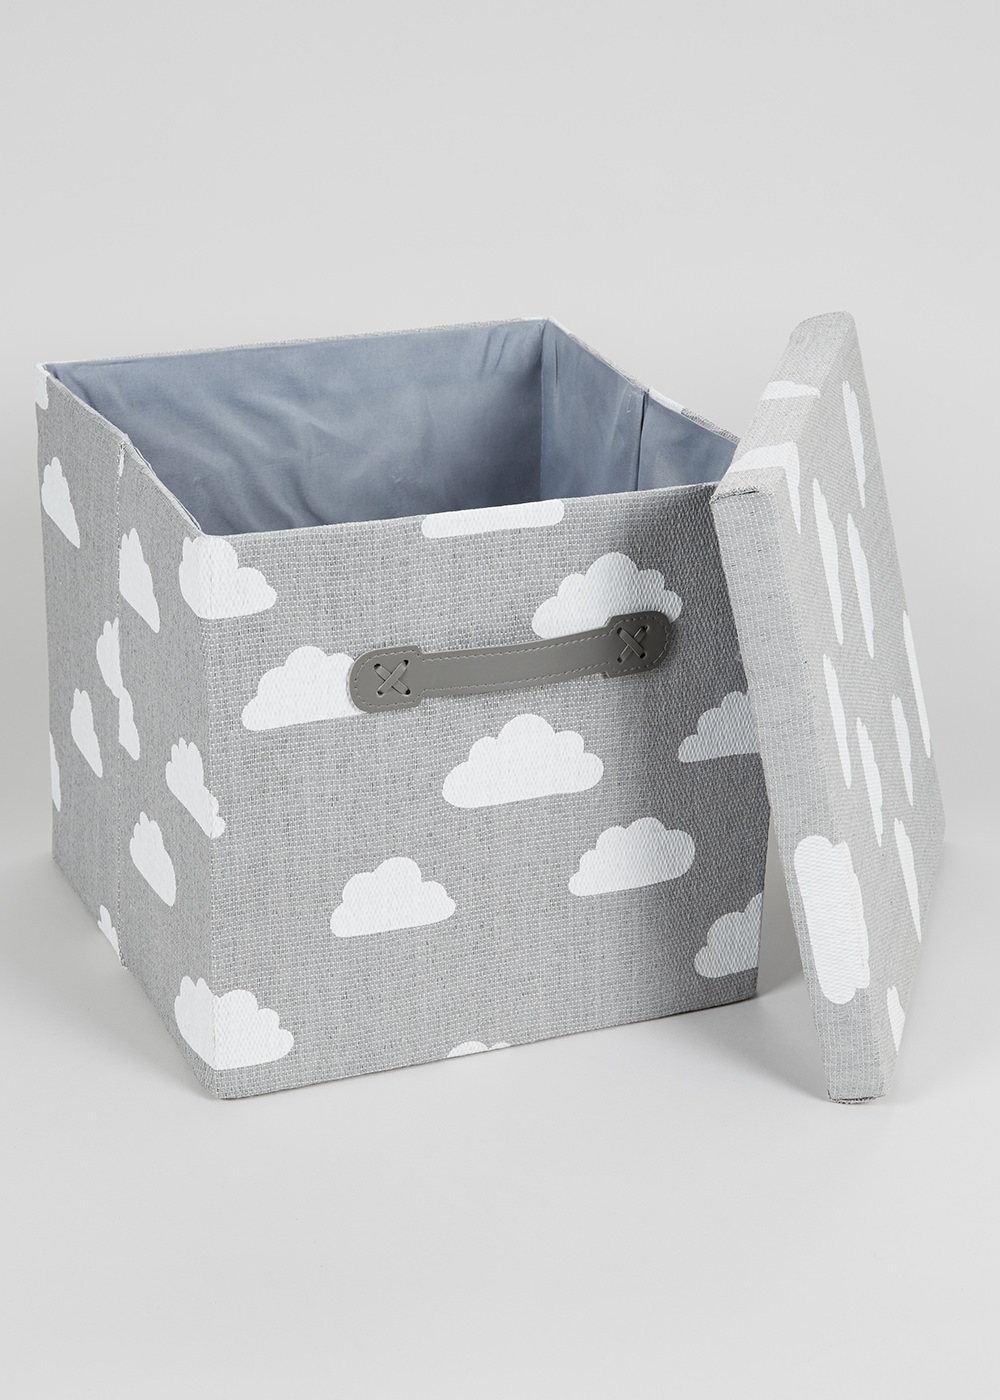 Cloud Foldable Fabric Storage Box (33Cm X 33Cm X 31Cm) – Matalan For Most Recent Matalan Canvas Wall Art (Gallery 11 of 15)